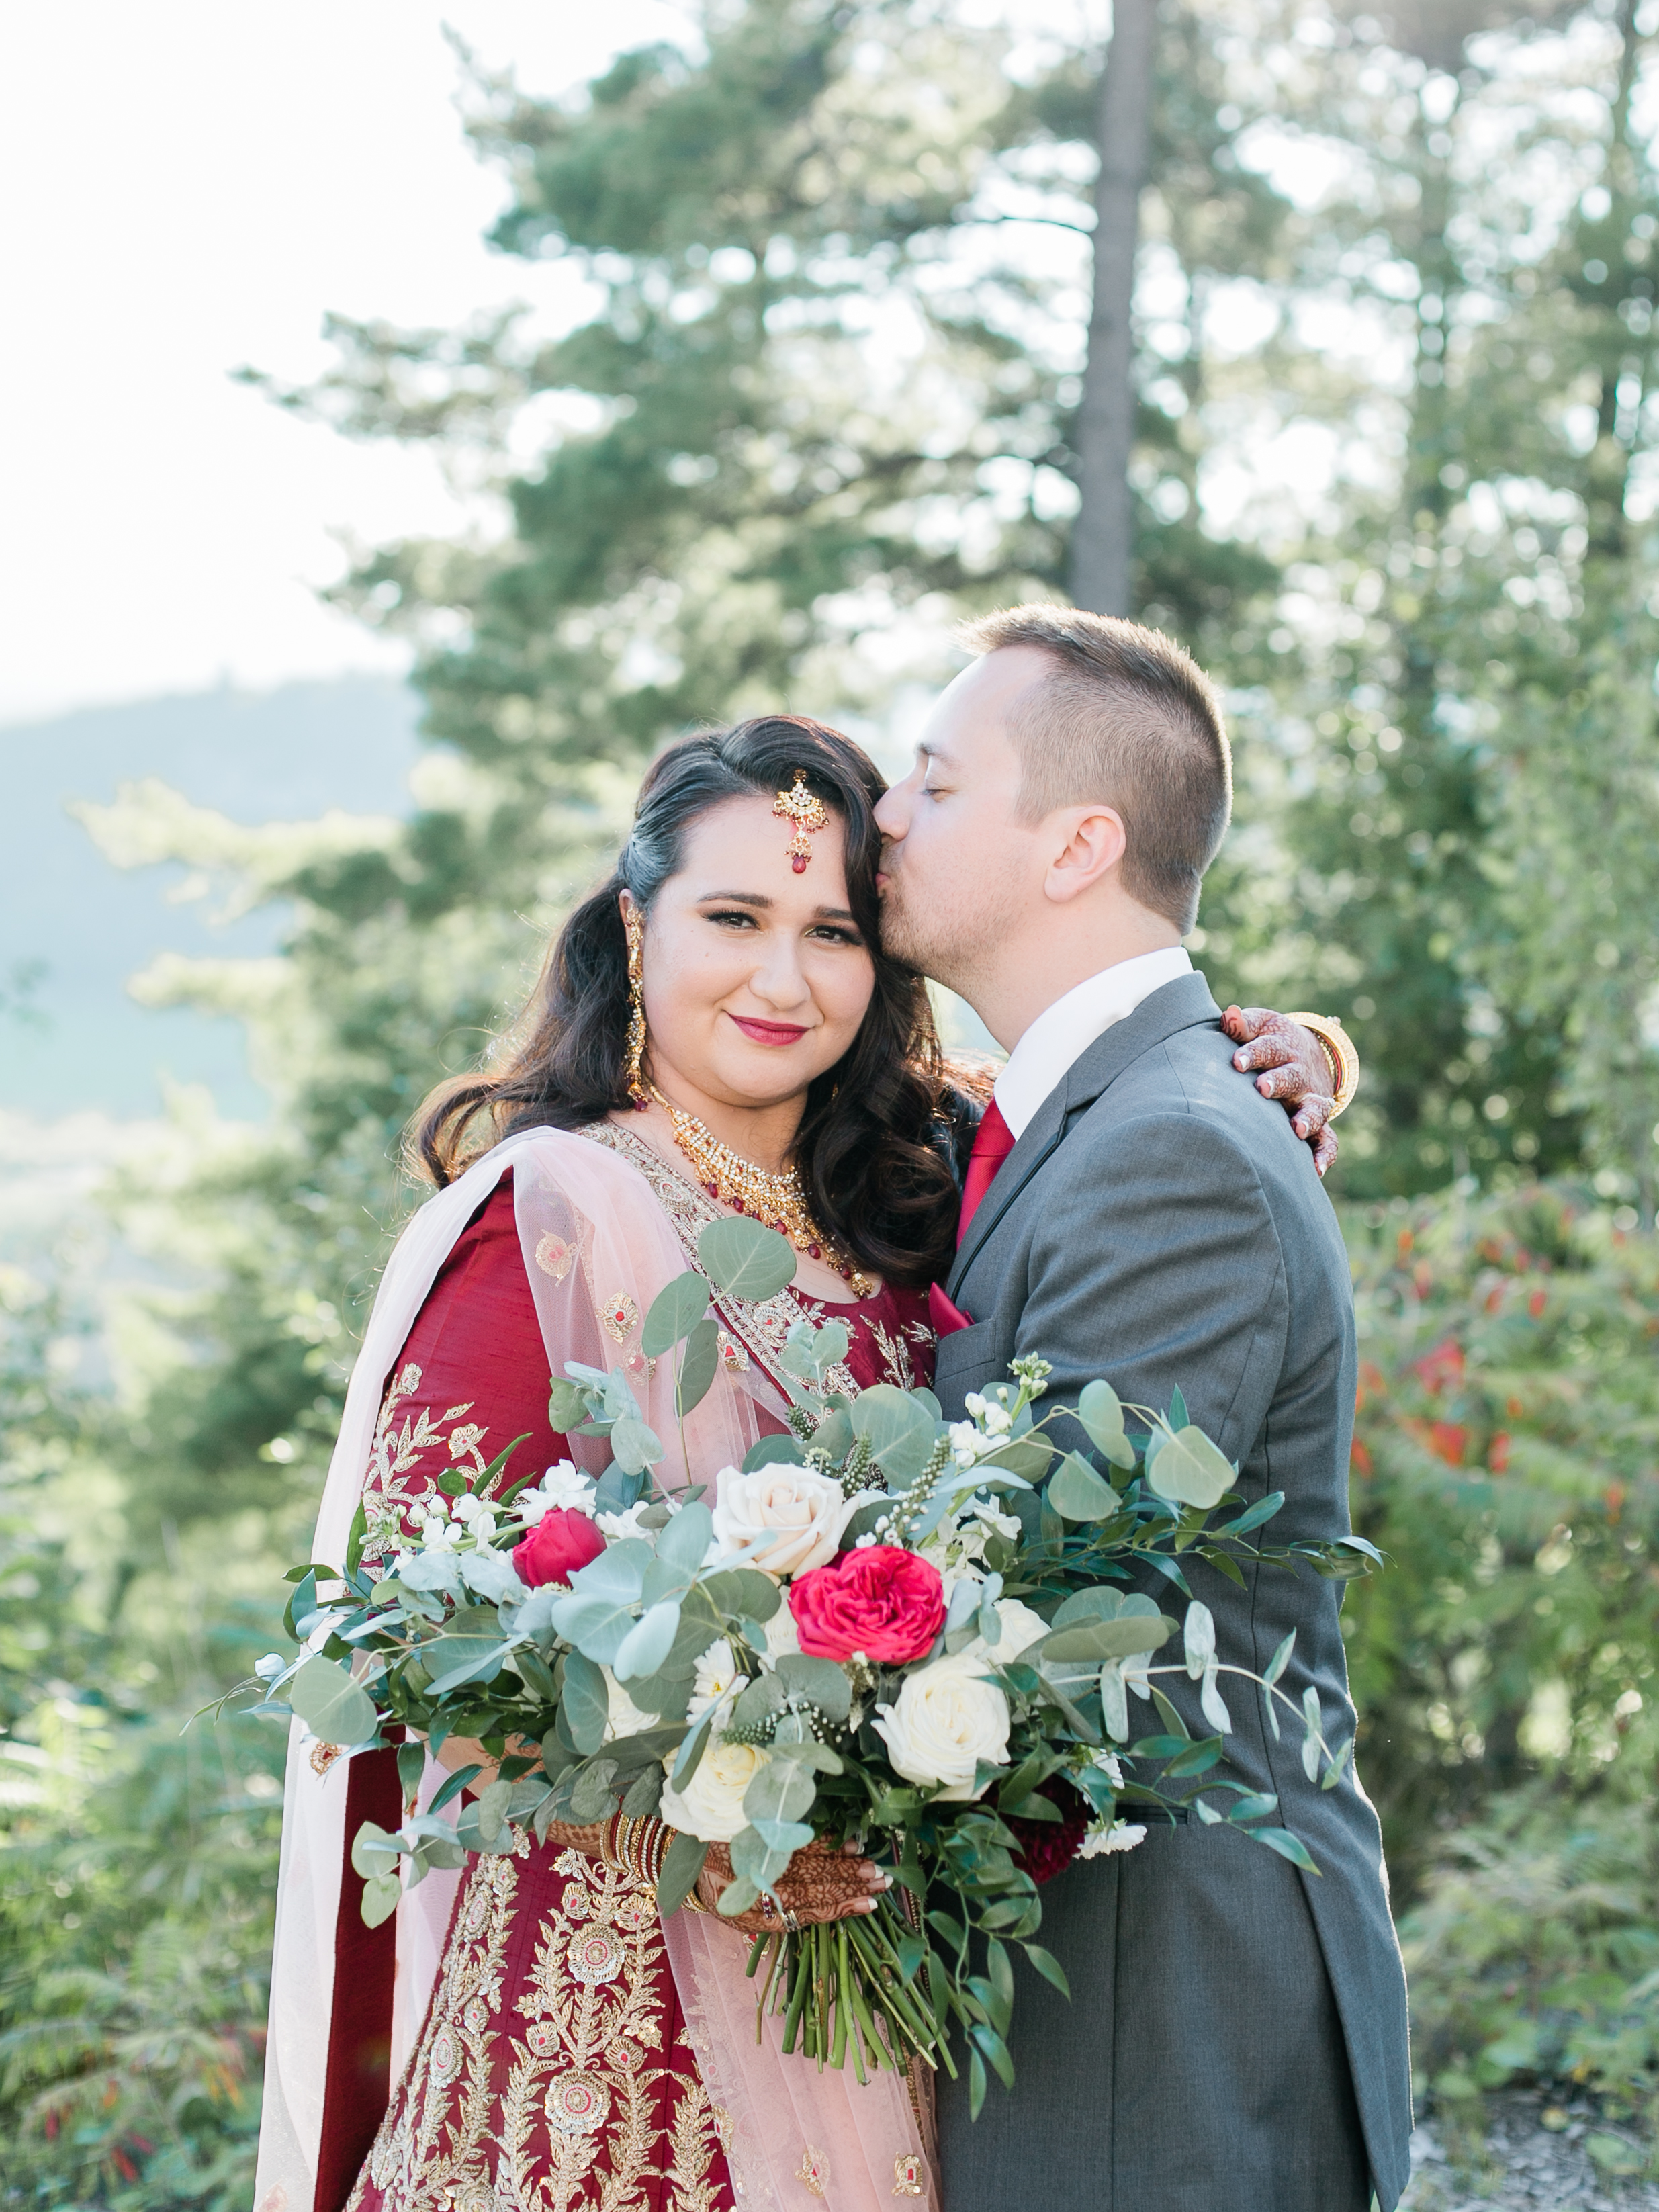 LeBelvedere_MountainTopWedding_StephanieMasonPhotography-254.jpg